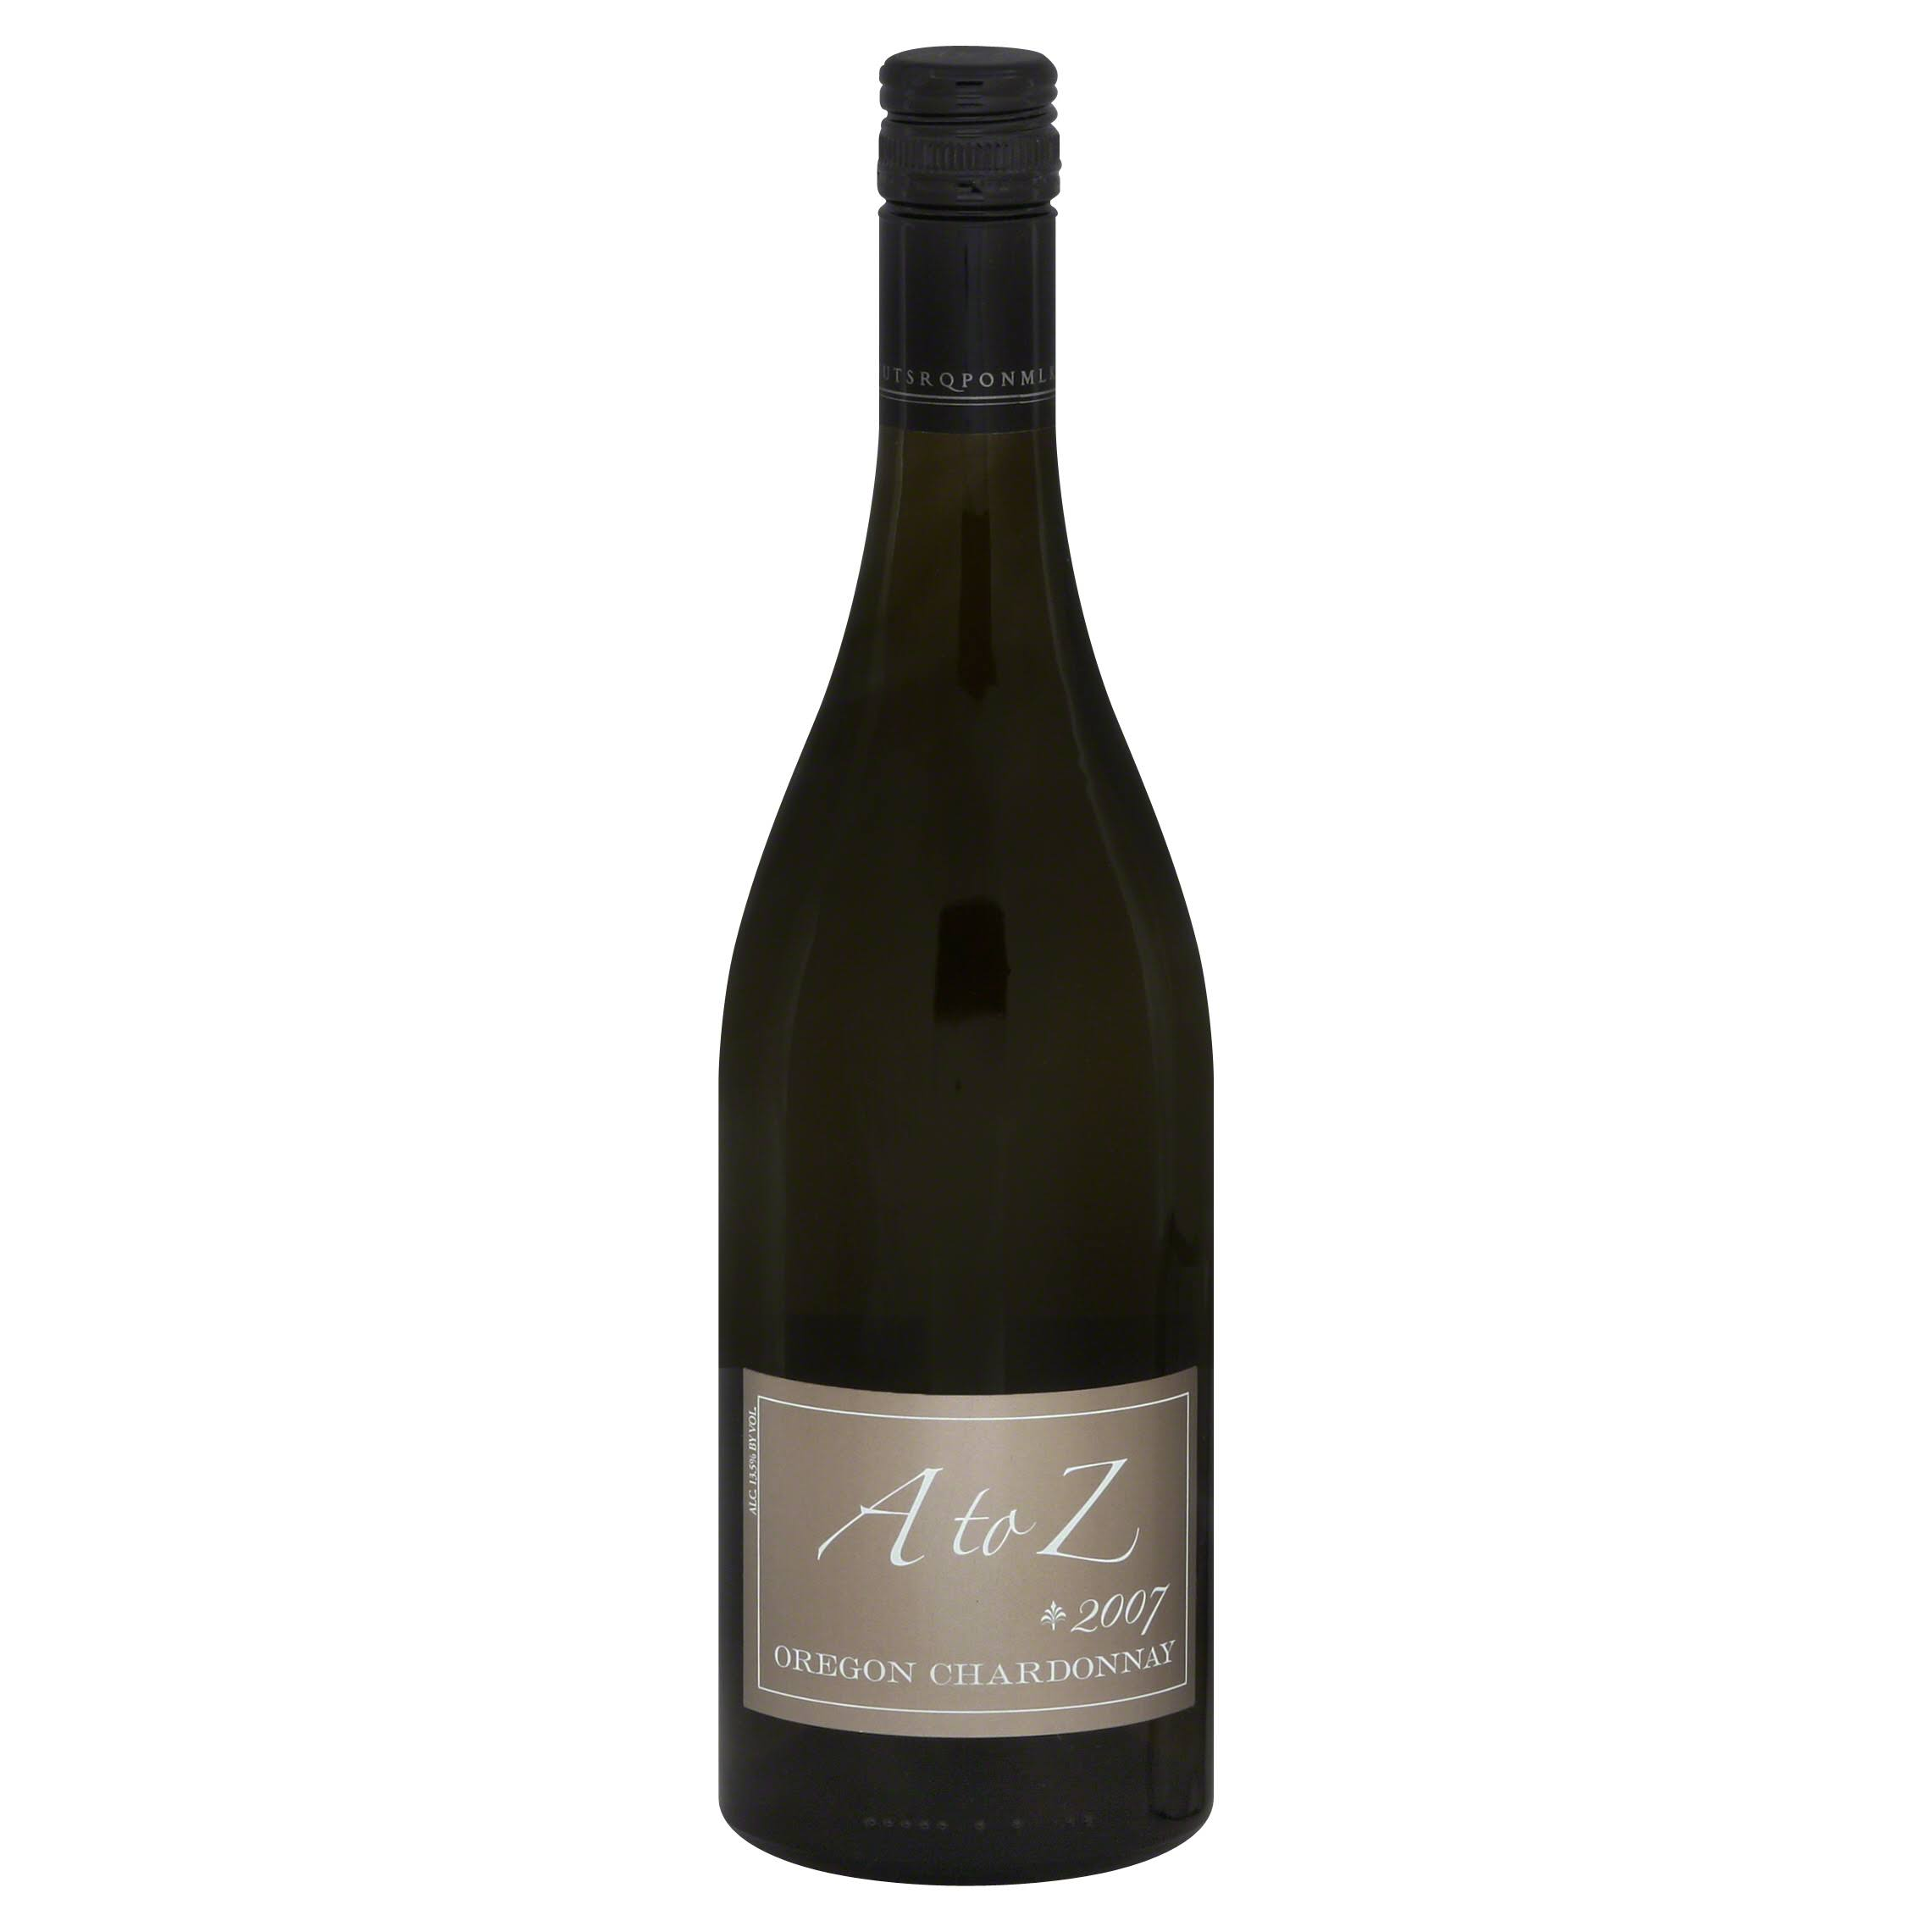 A To Z Chardonnay - Oregon, 2012